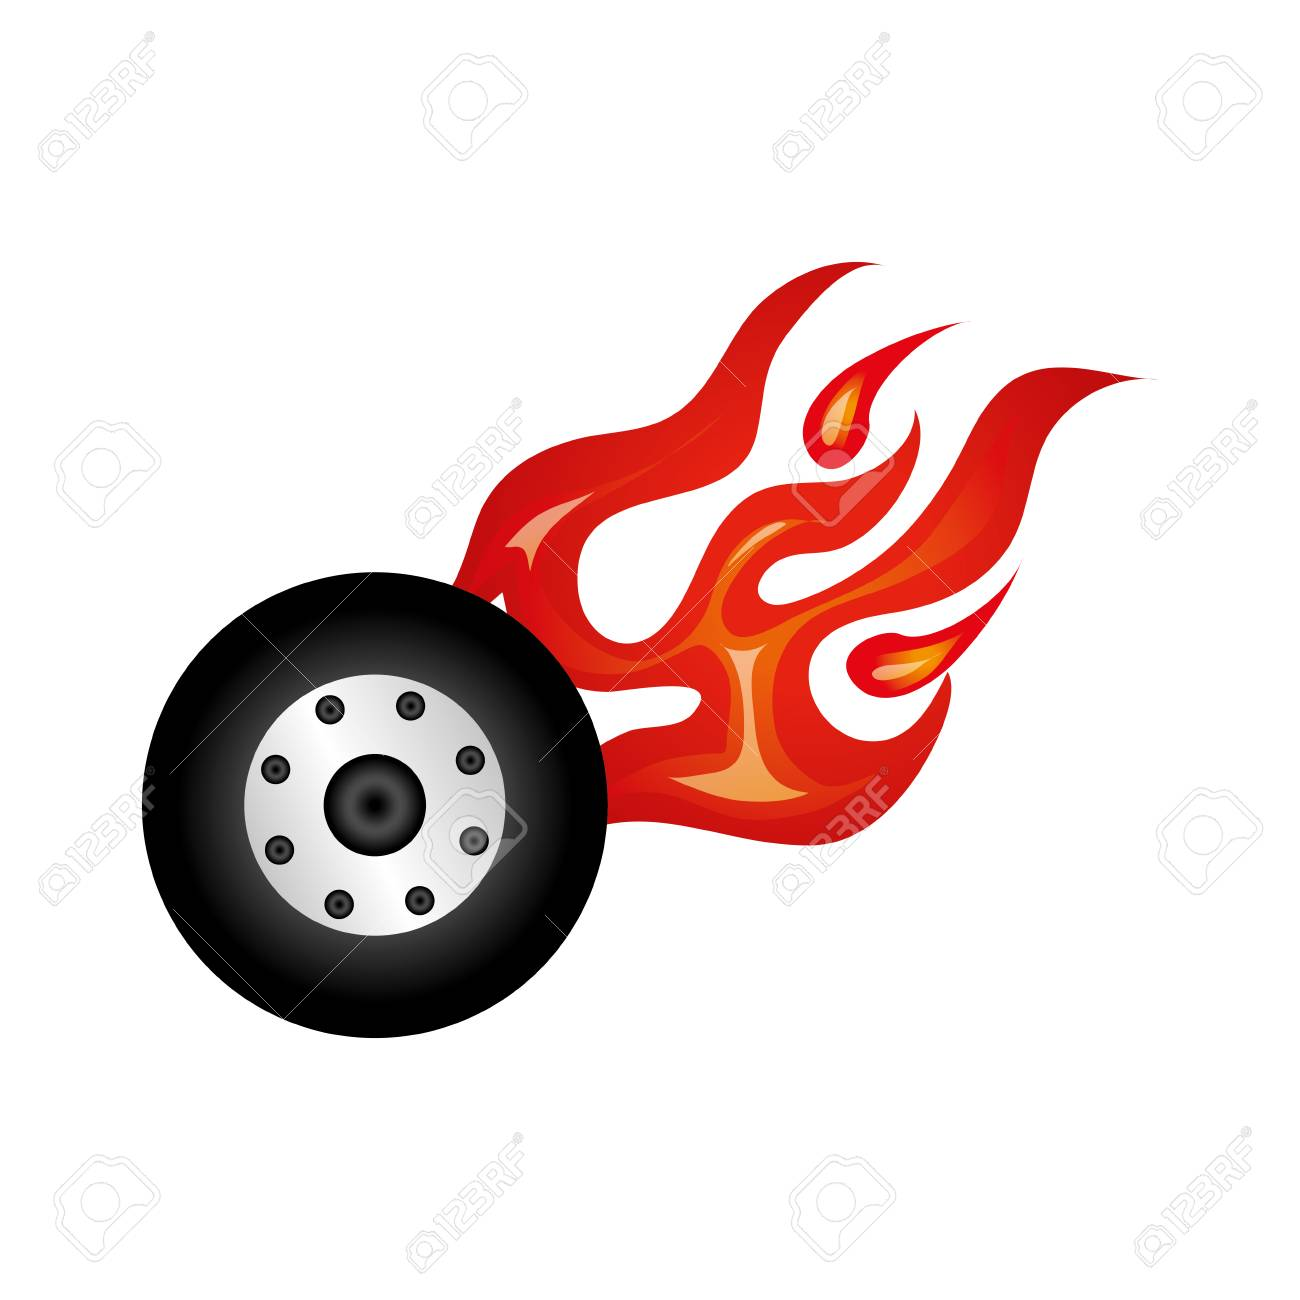 car wheel tire icon vector illustration design royalty free cliparts